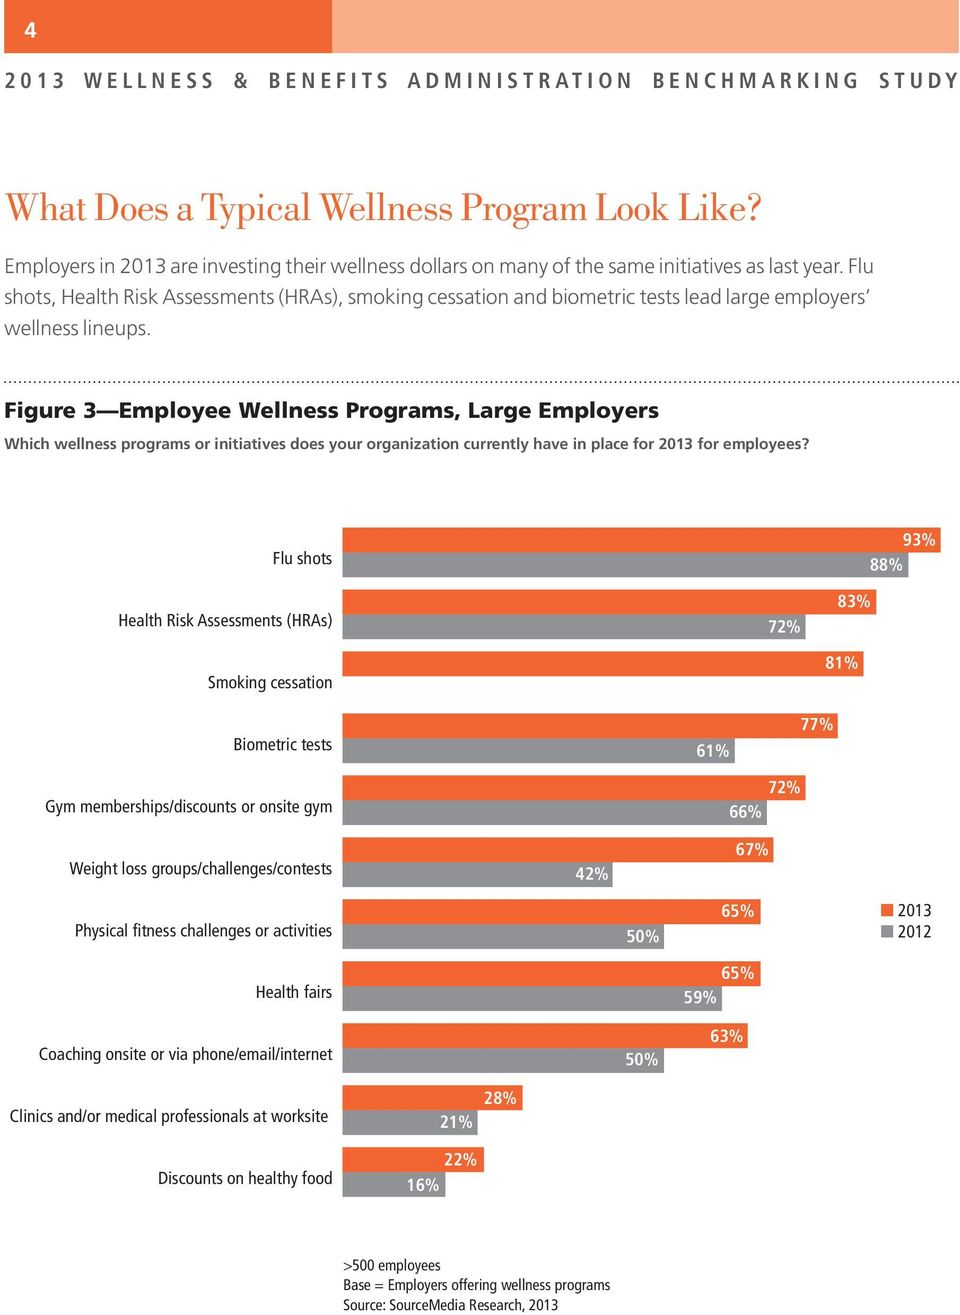 Flu shots, Health Risk Assessments (HRAs), smoking cessation and biometric tests lead large employers wellness lineups.